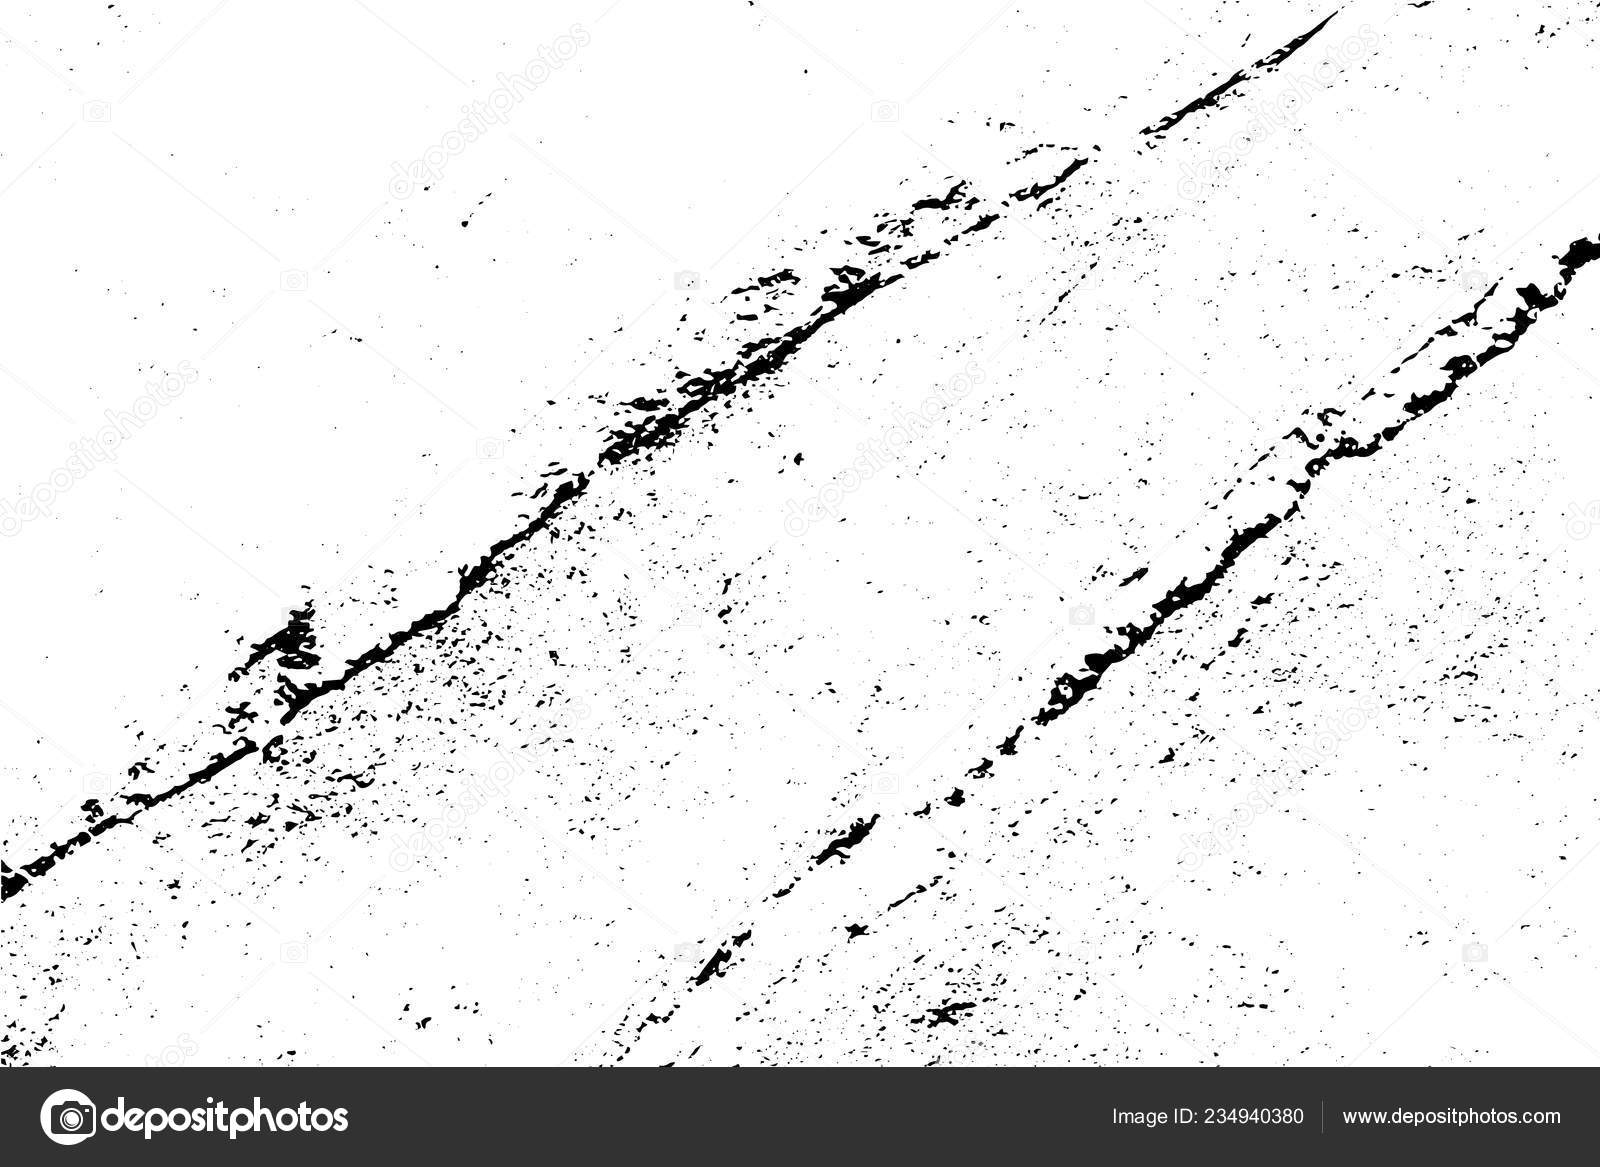 Black White Grunge Urban Texture Vector Copy Space Abstract